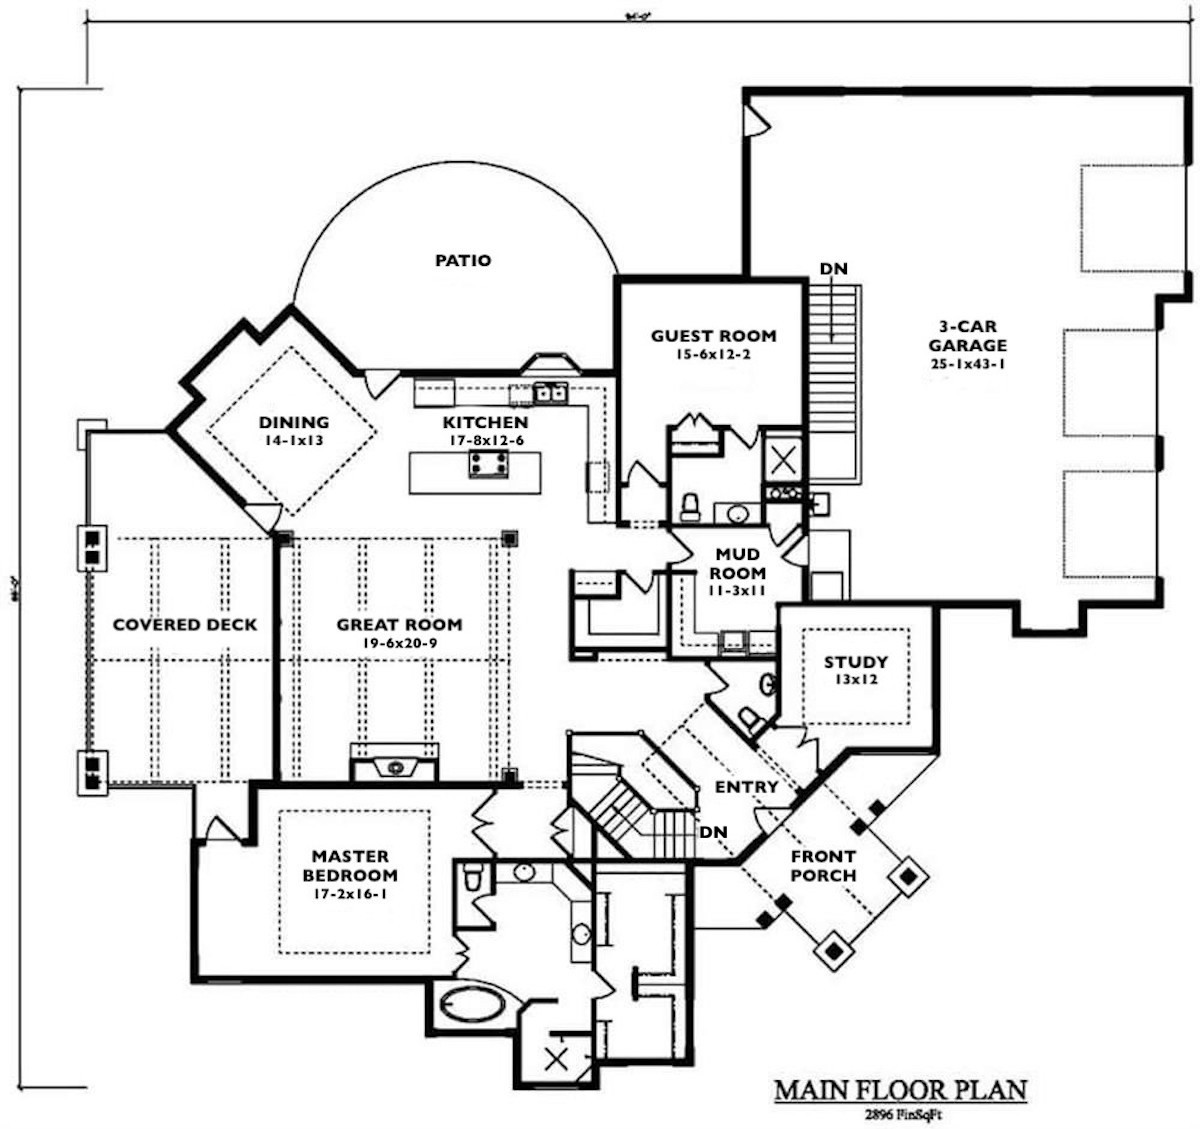 Main level floor plan for rustic Mountain style plan #161-1049 showing mud room